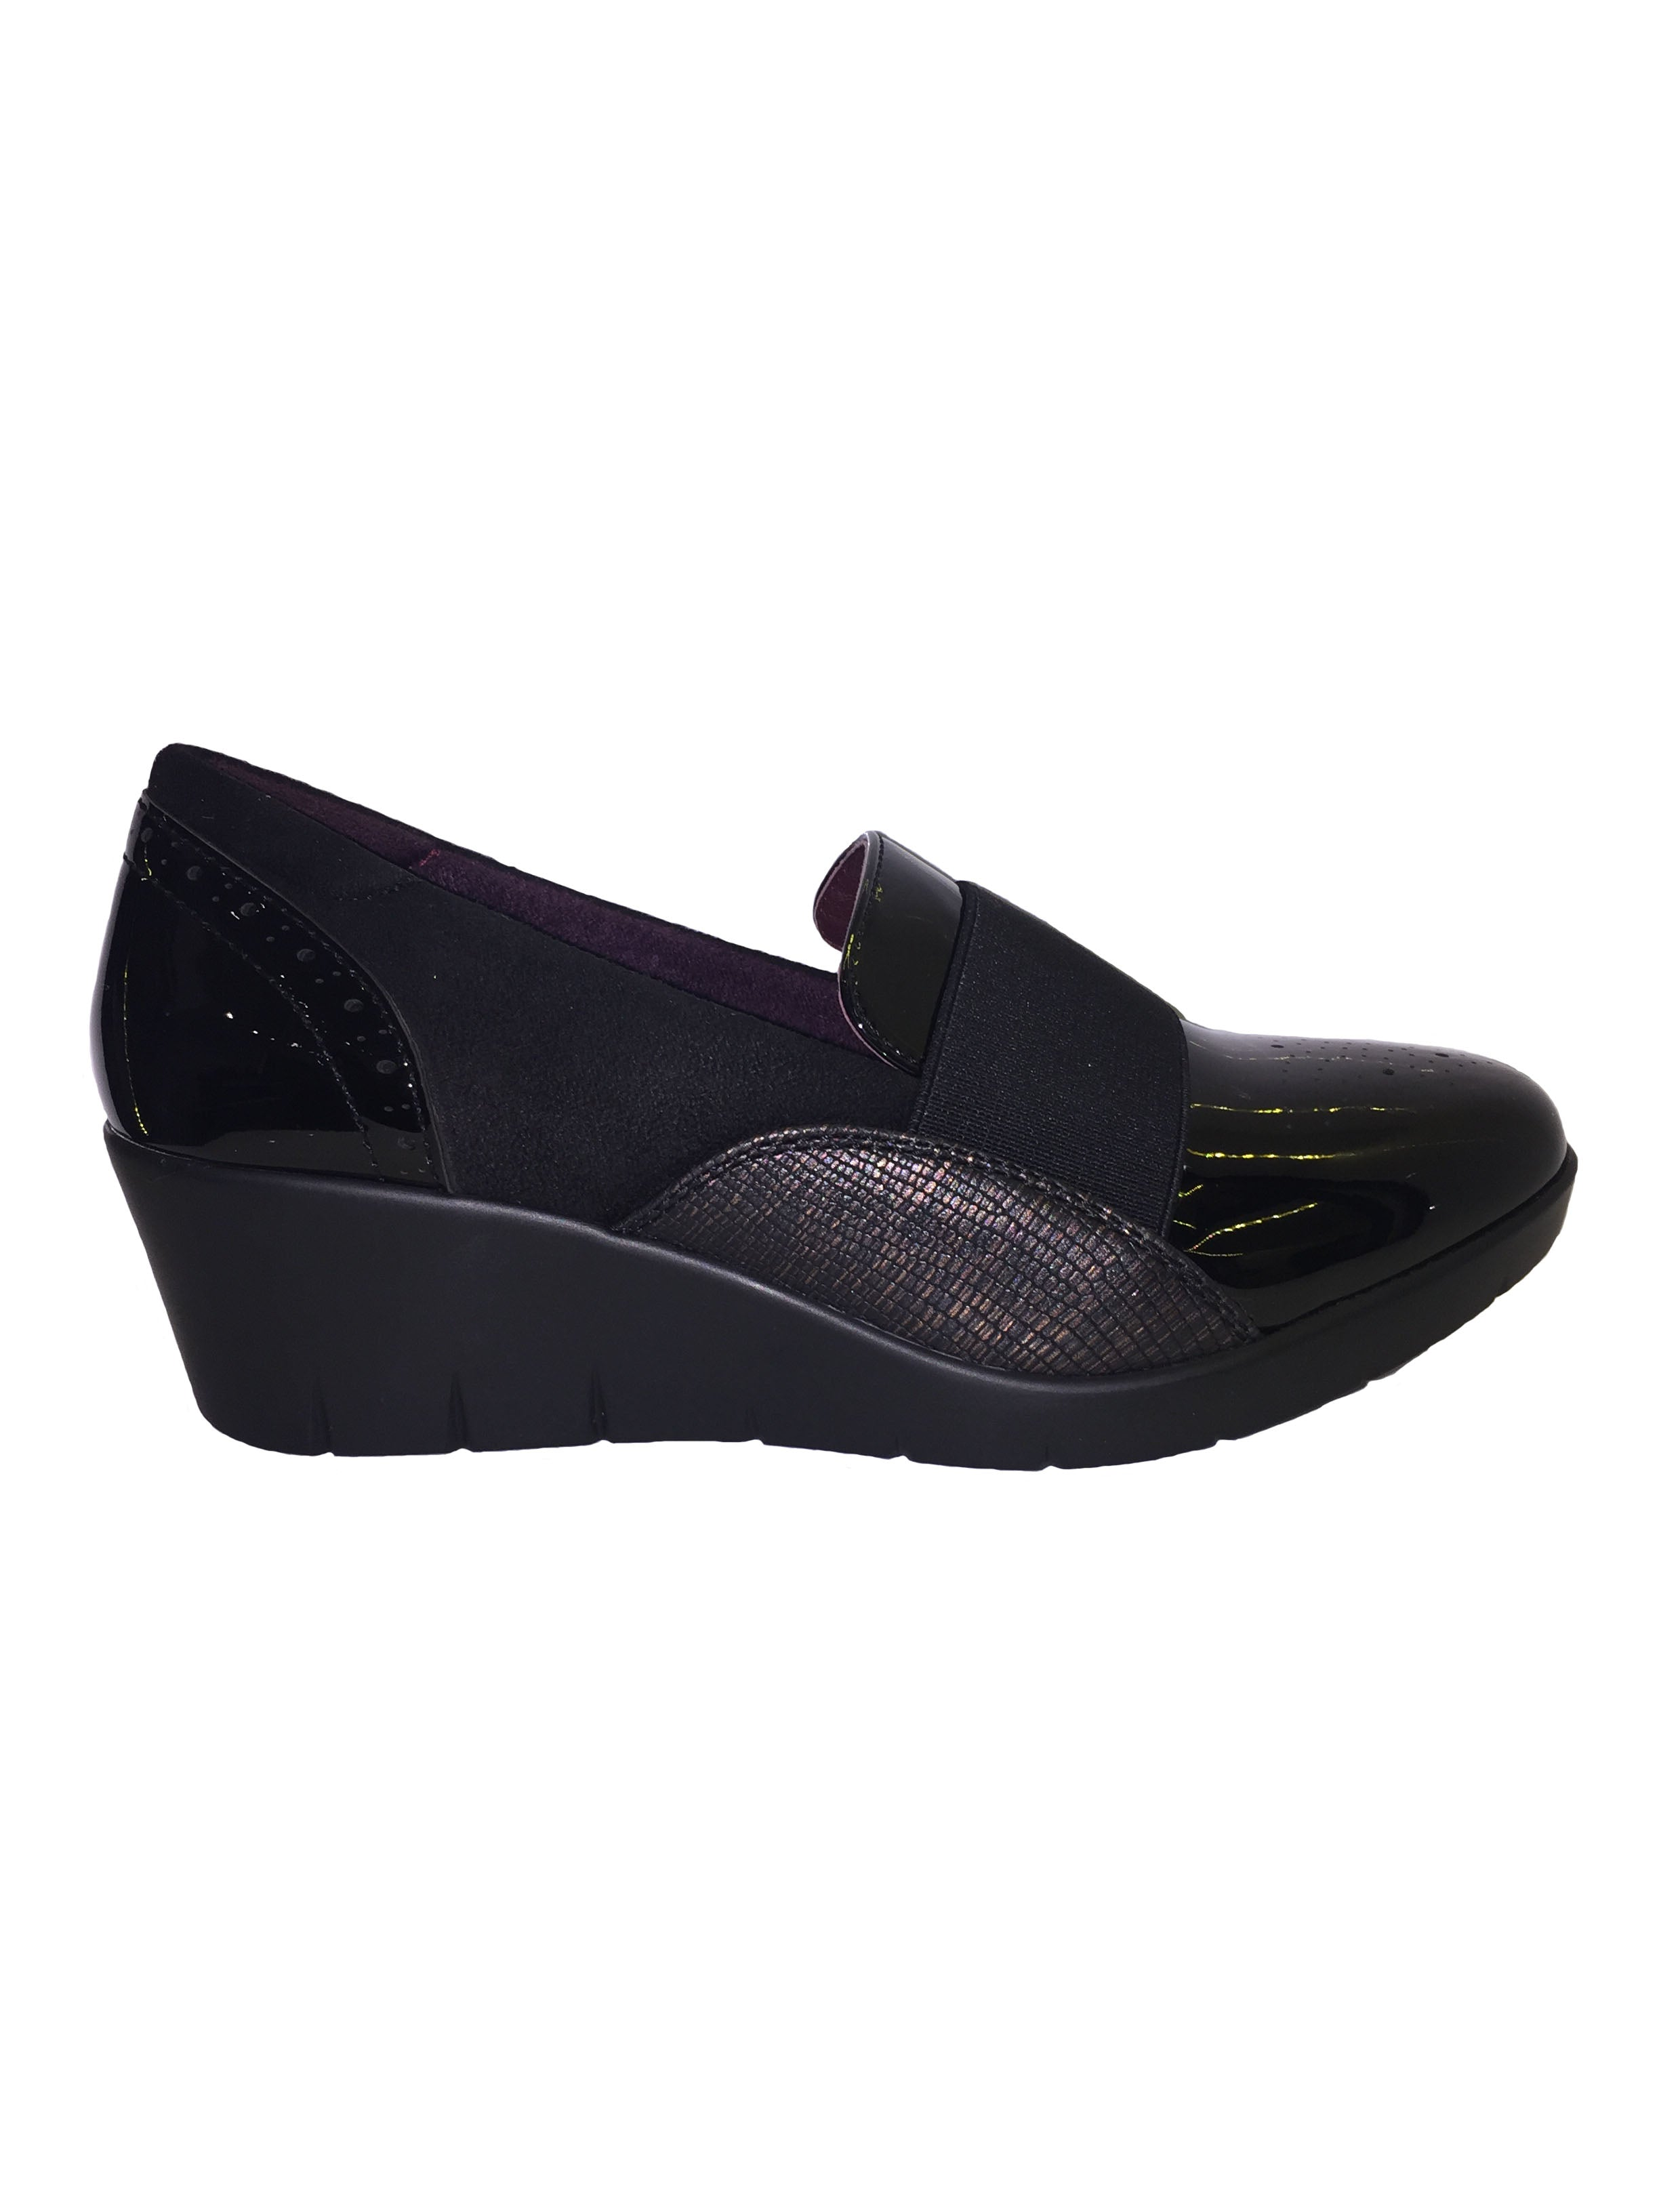 Hurlun Rote Black Slip On Wedges